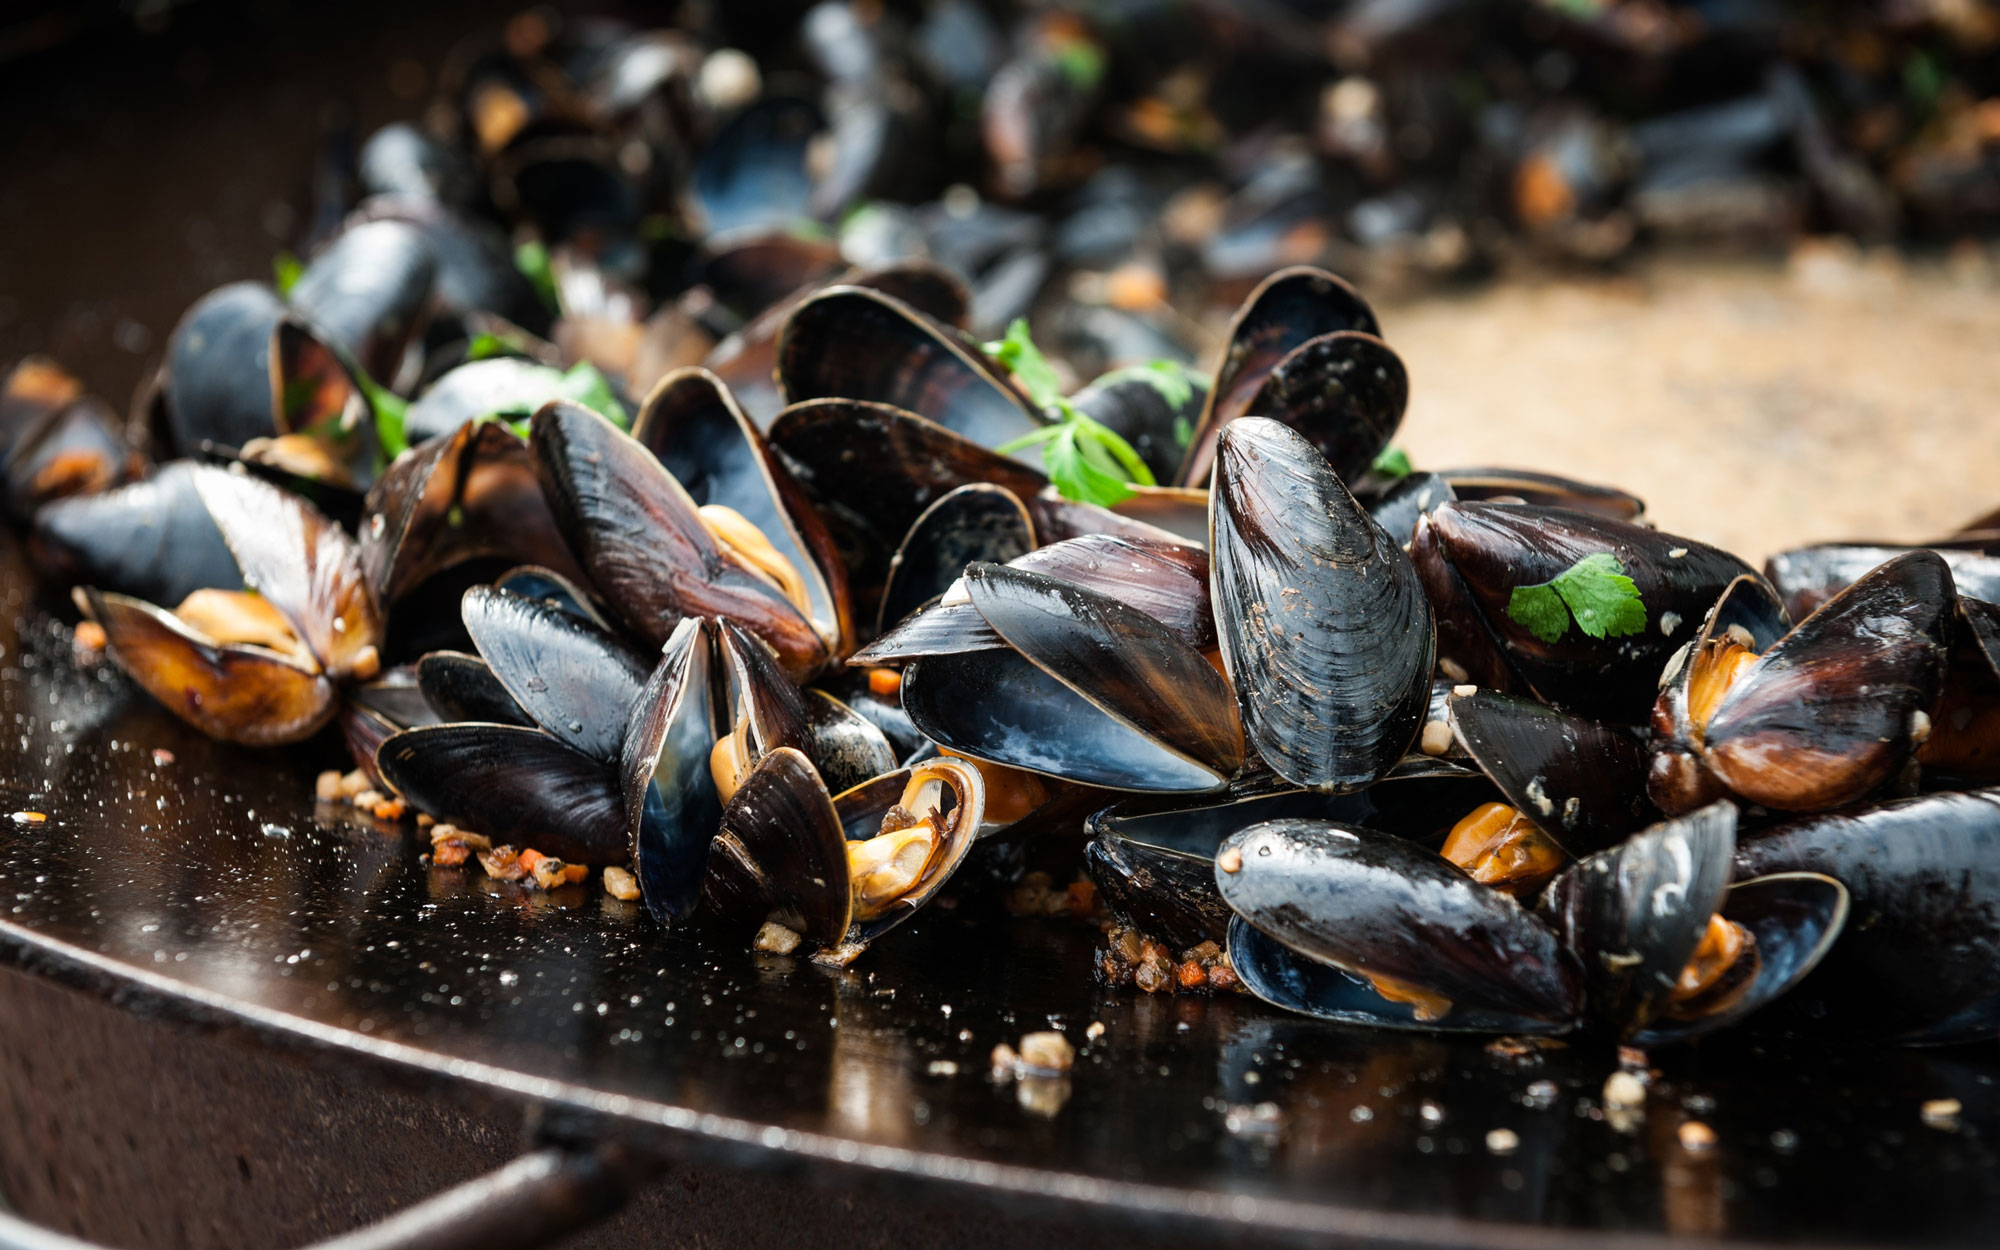 Mussels Sweden